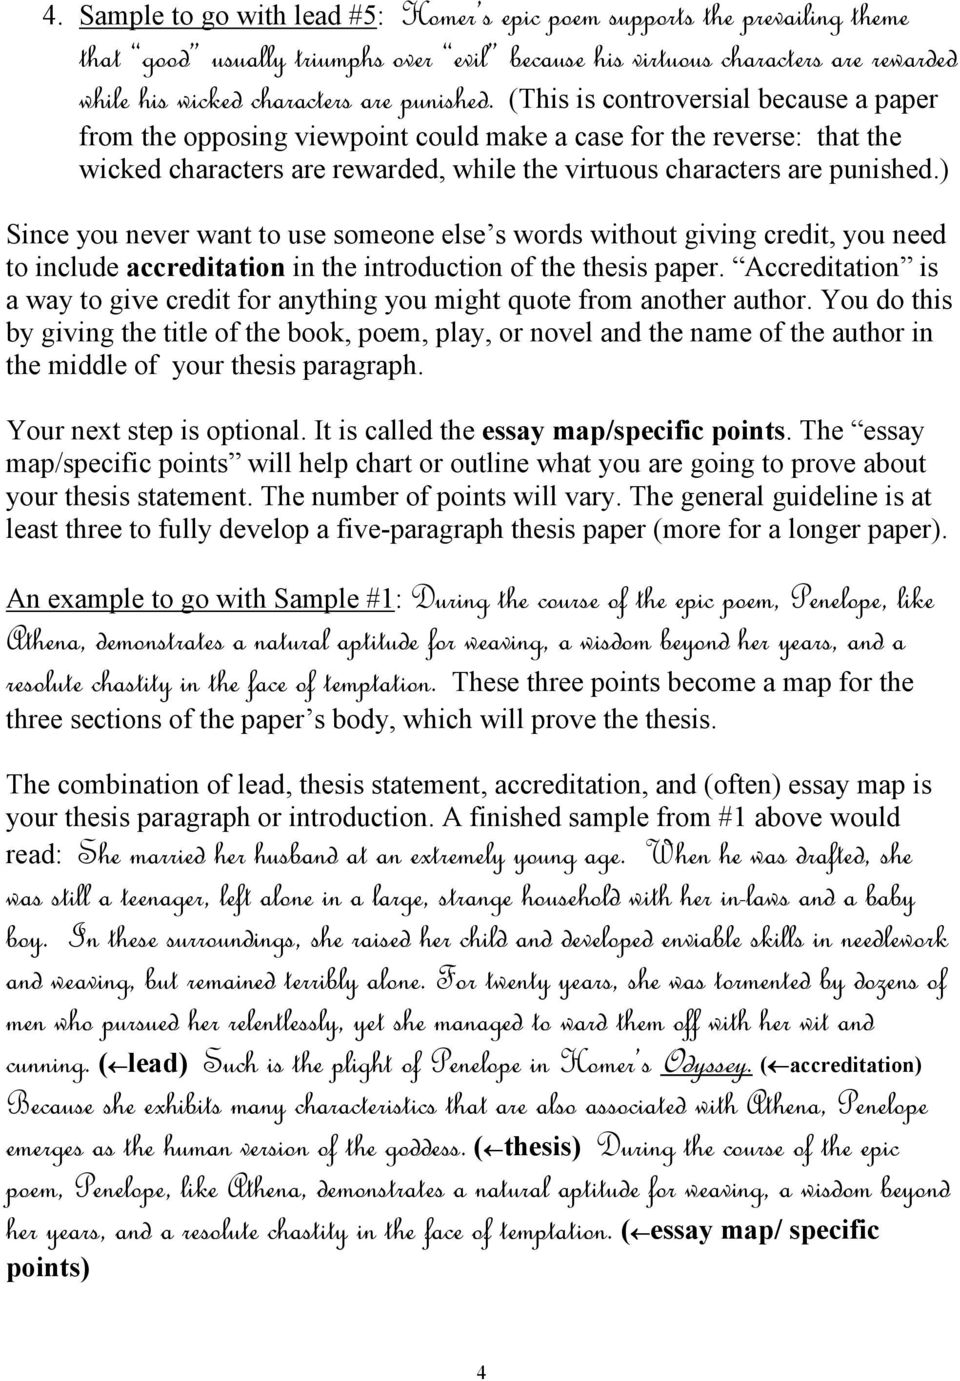 Five paragraph essay quote